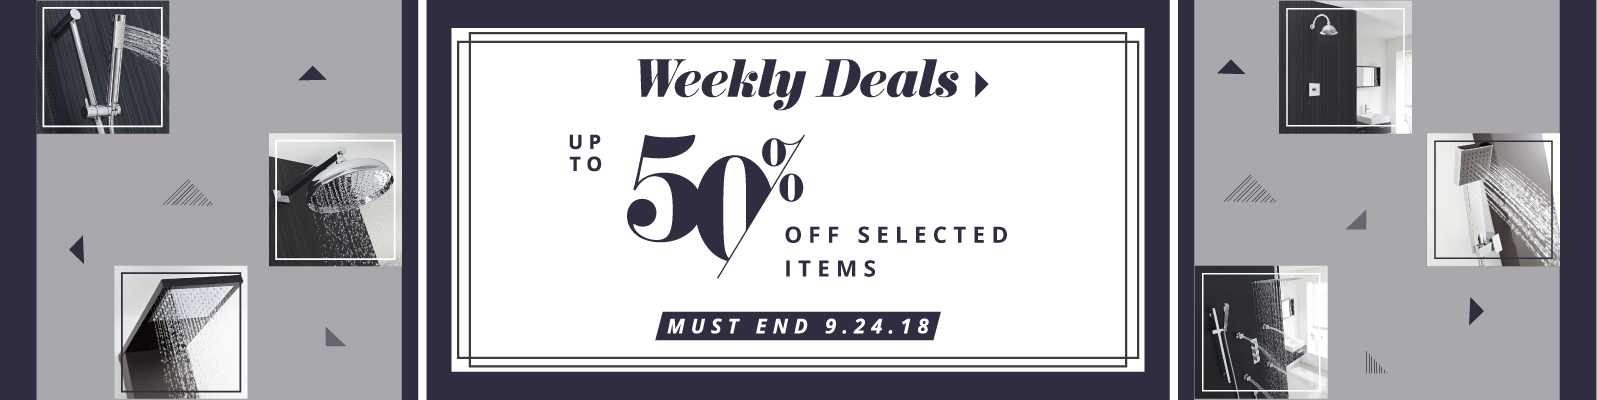 Weekly Deals Up to 50% off selected items Must End 9.24.18